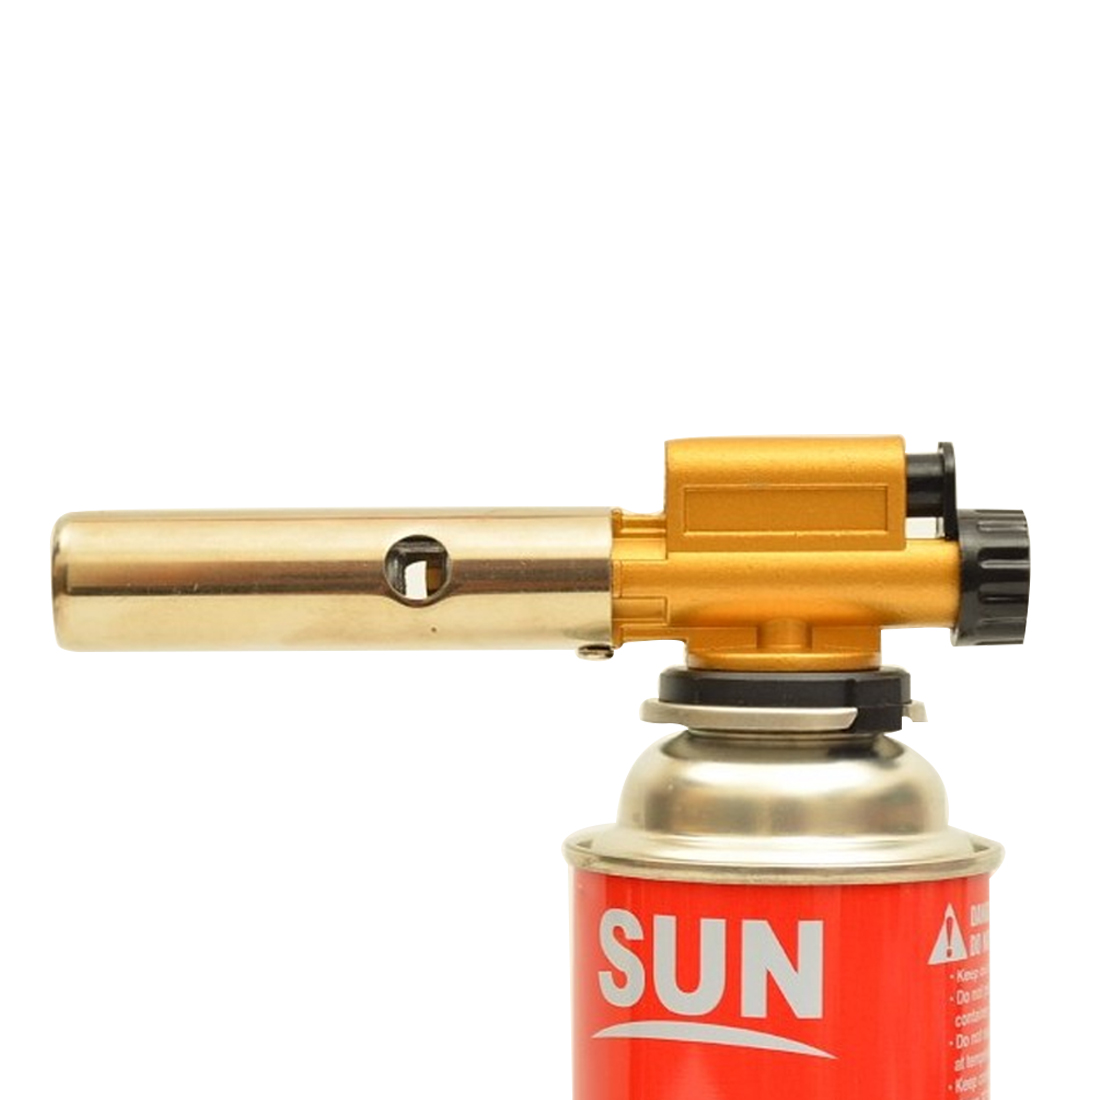 Metal Electronic Ignition Copper Flame Gun Butane Gas Burners Maker Torch Lighter For Outdoor Camping Picnic Cooking Welding